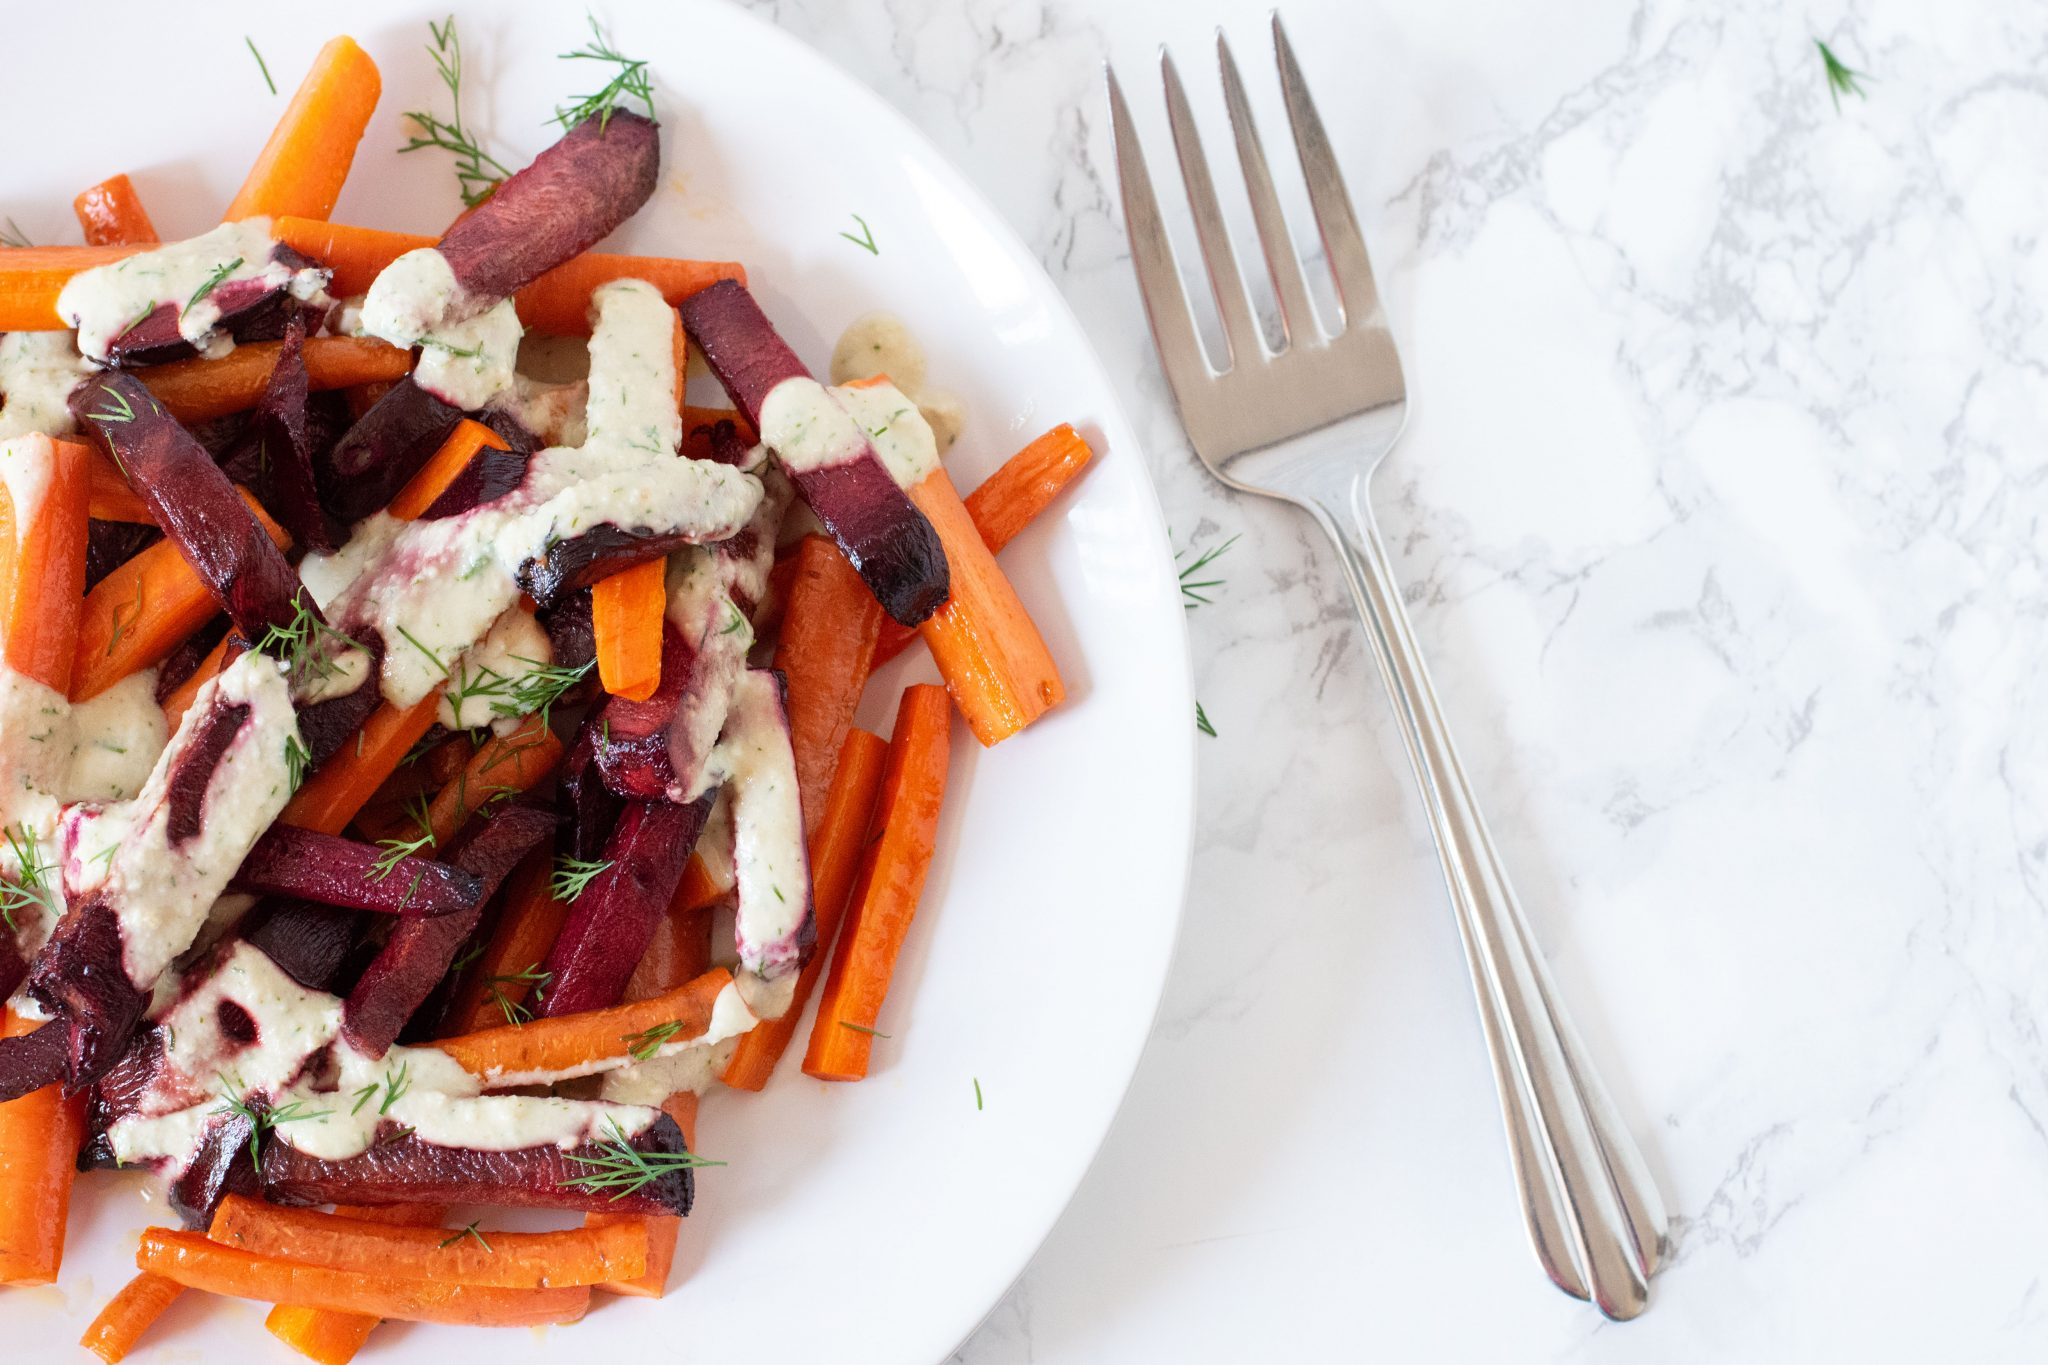 Roasted Beets and Carrots 3